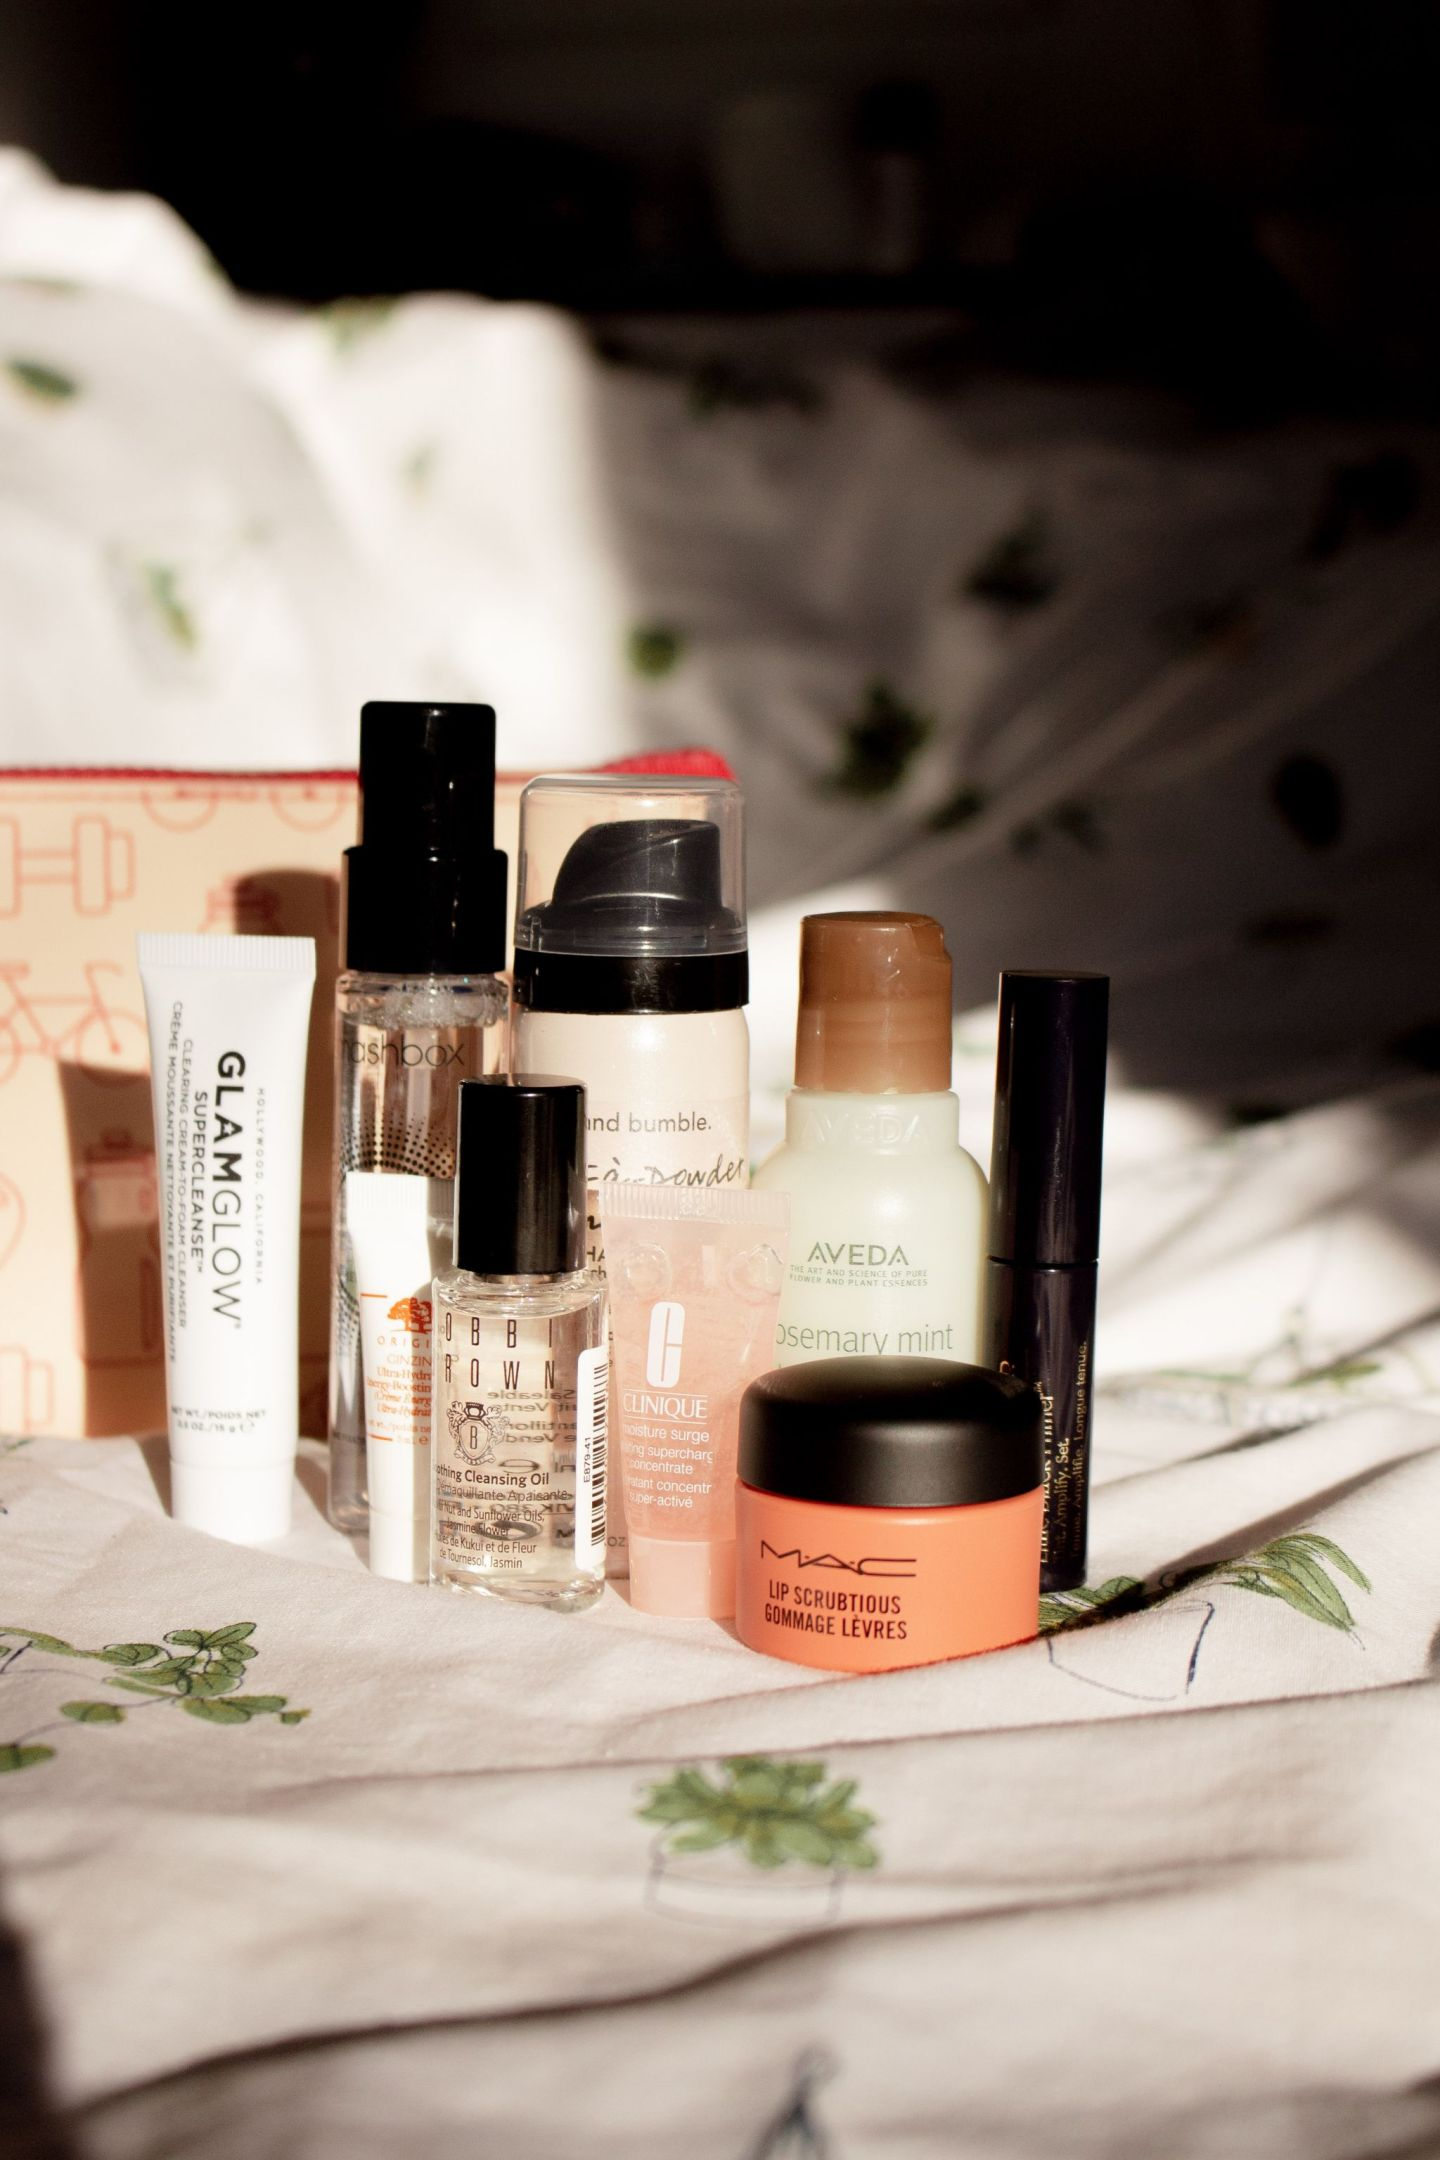 Estee Lauder Hit Reset Set Review